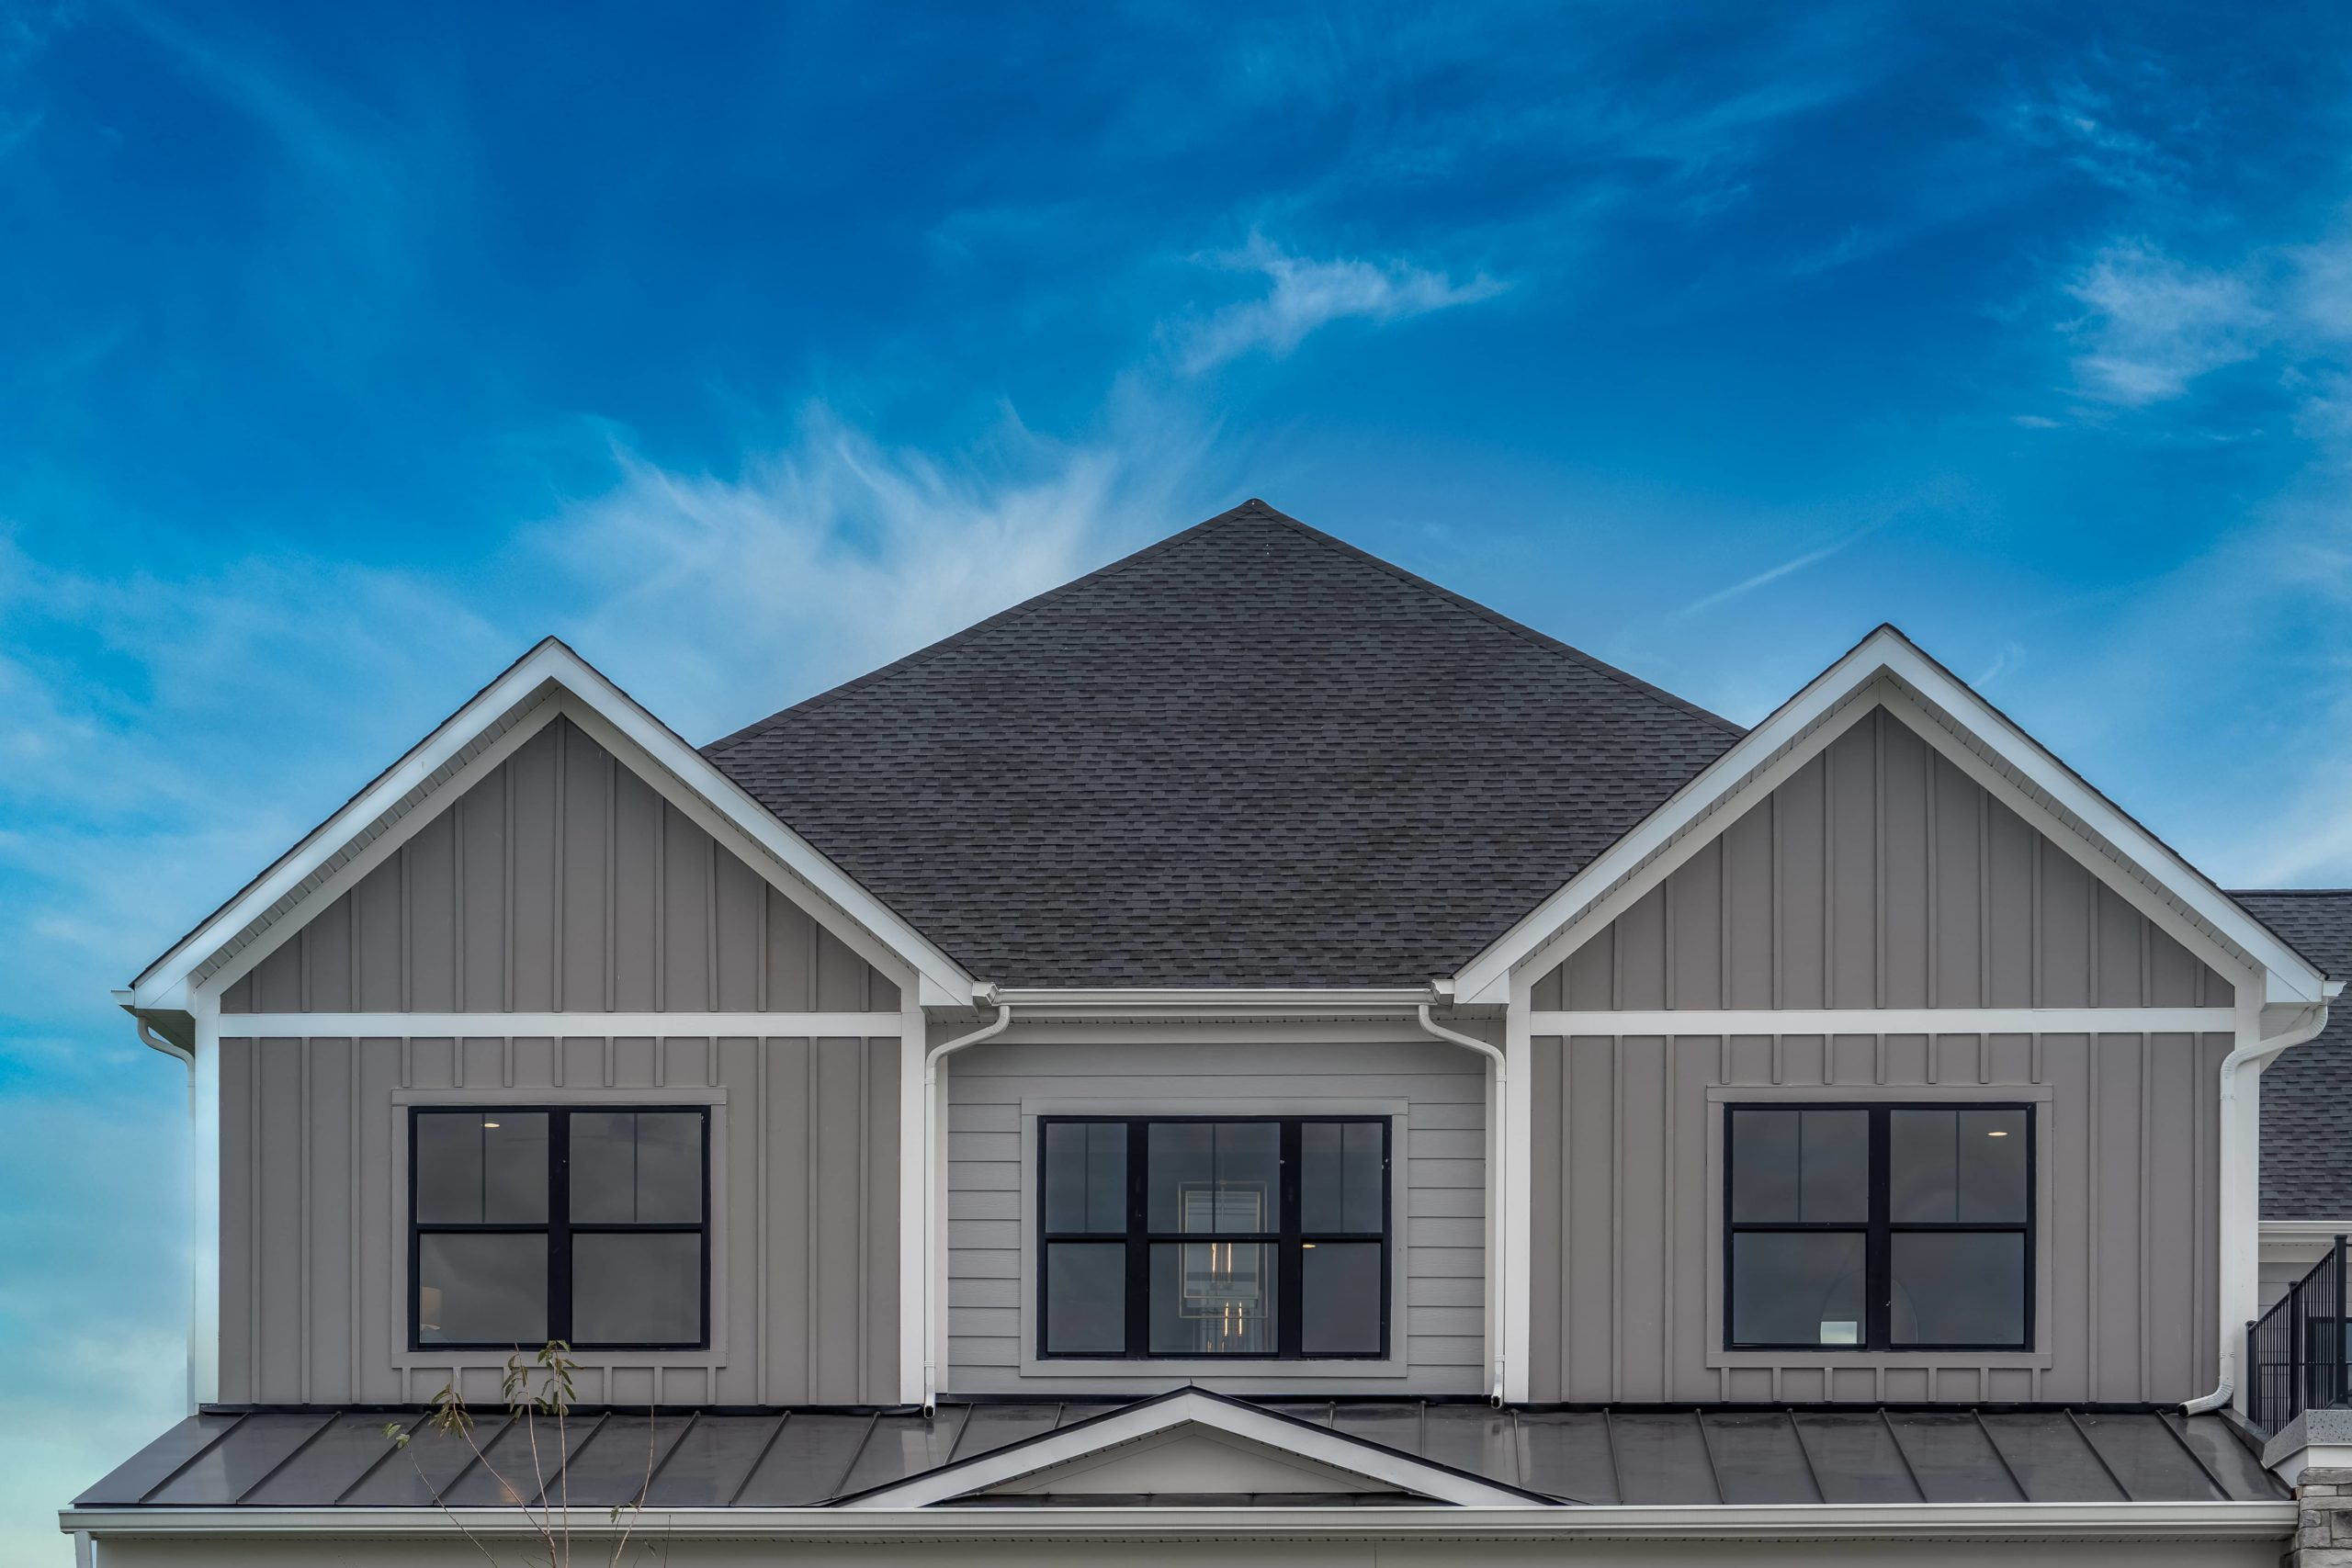 Picture shows a roof with two roof rakes